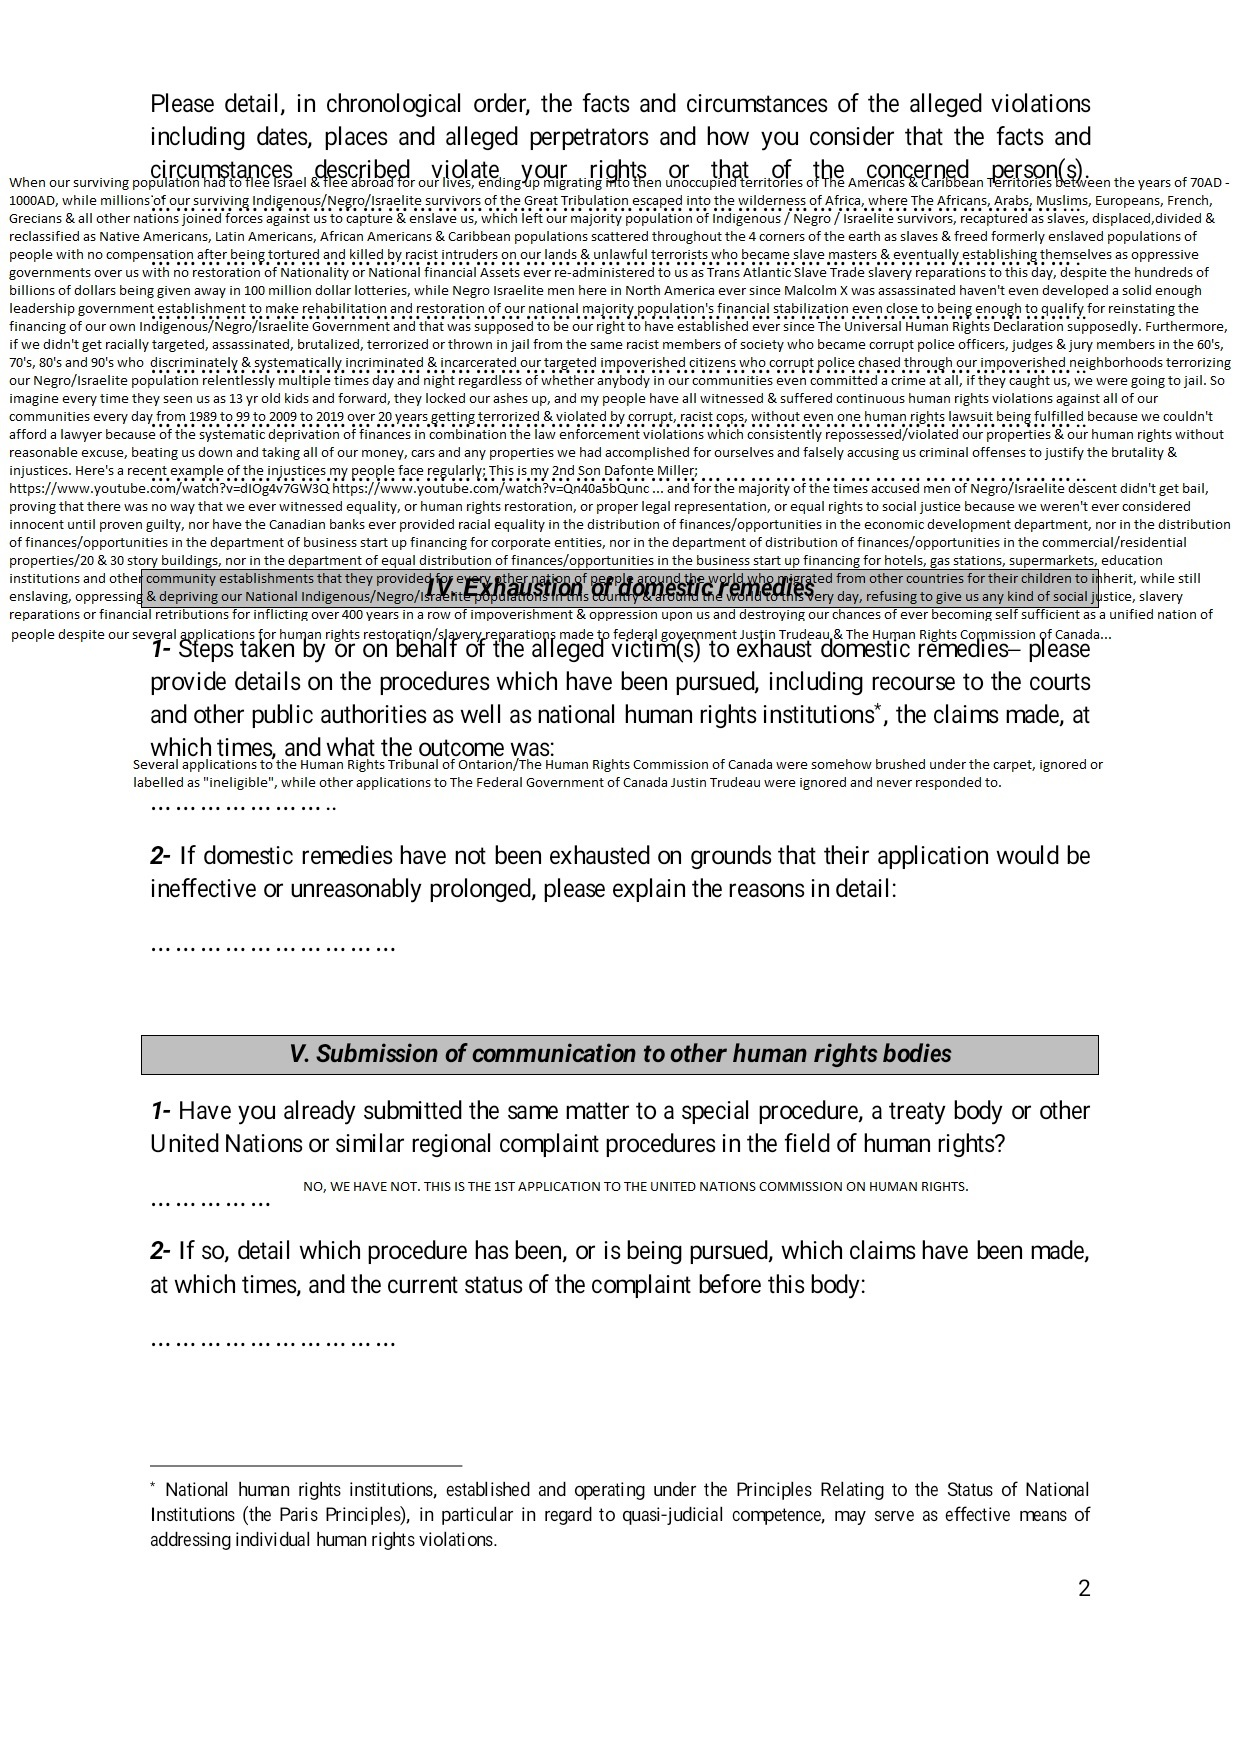 UNITED NATIONS COMMISSION ON HUMAN RIGHTS COMPLAINTS APPLICATION PART 2